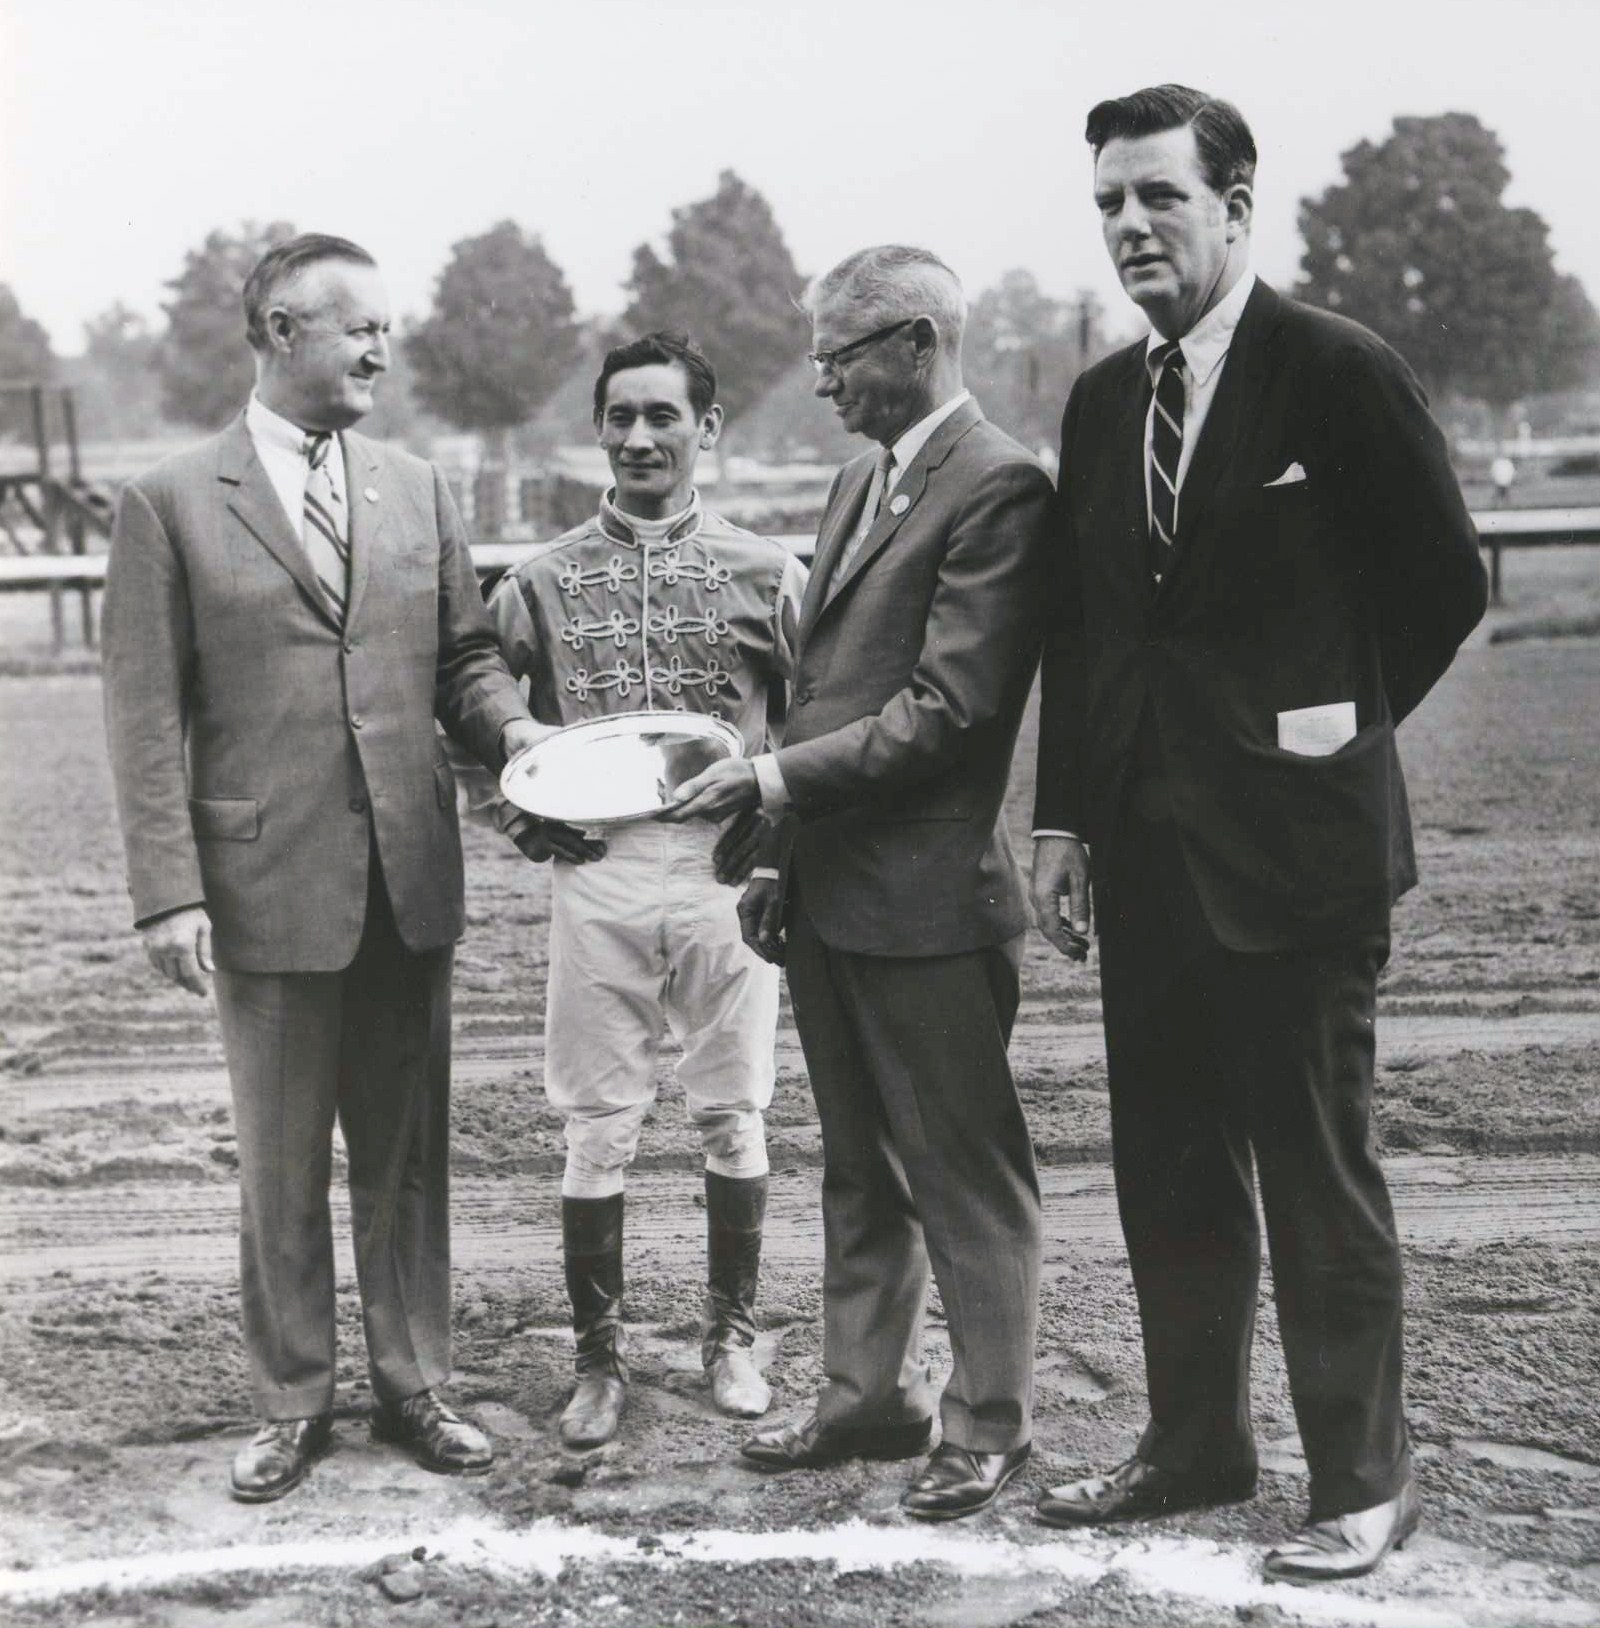 From left, Paul Mellon, Braulio Baeza, the Honorable William L. Pfeiffer, and Elliott Burch at Saratoga for winner's circle presentation after Arts and Letters' Jim Dandy Stakes victory, Aug. 8, 1969 (Museum Collection)